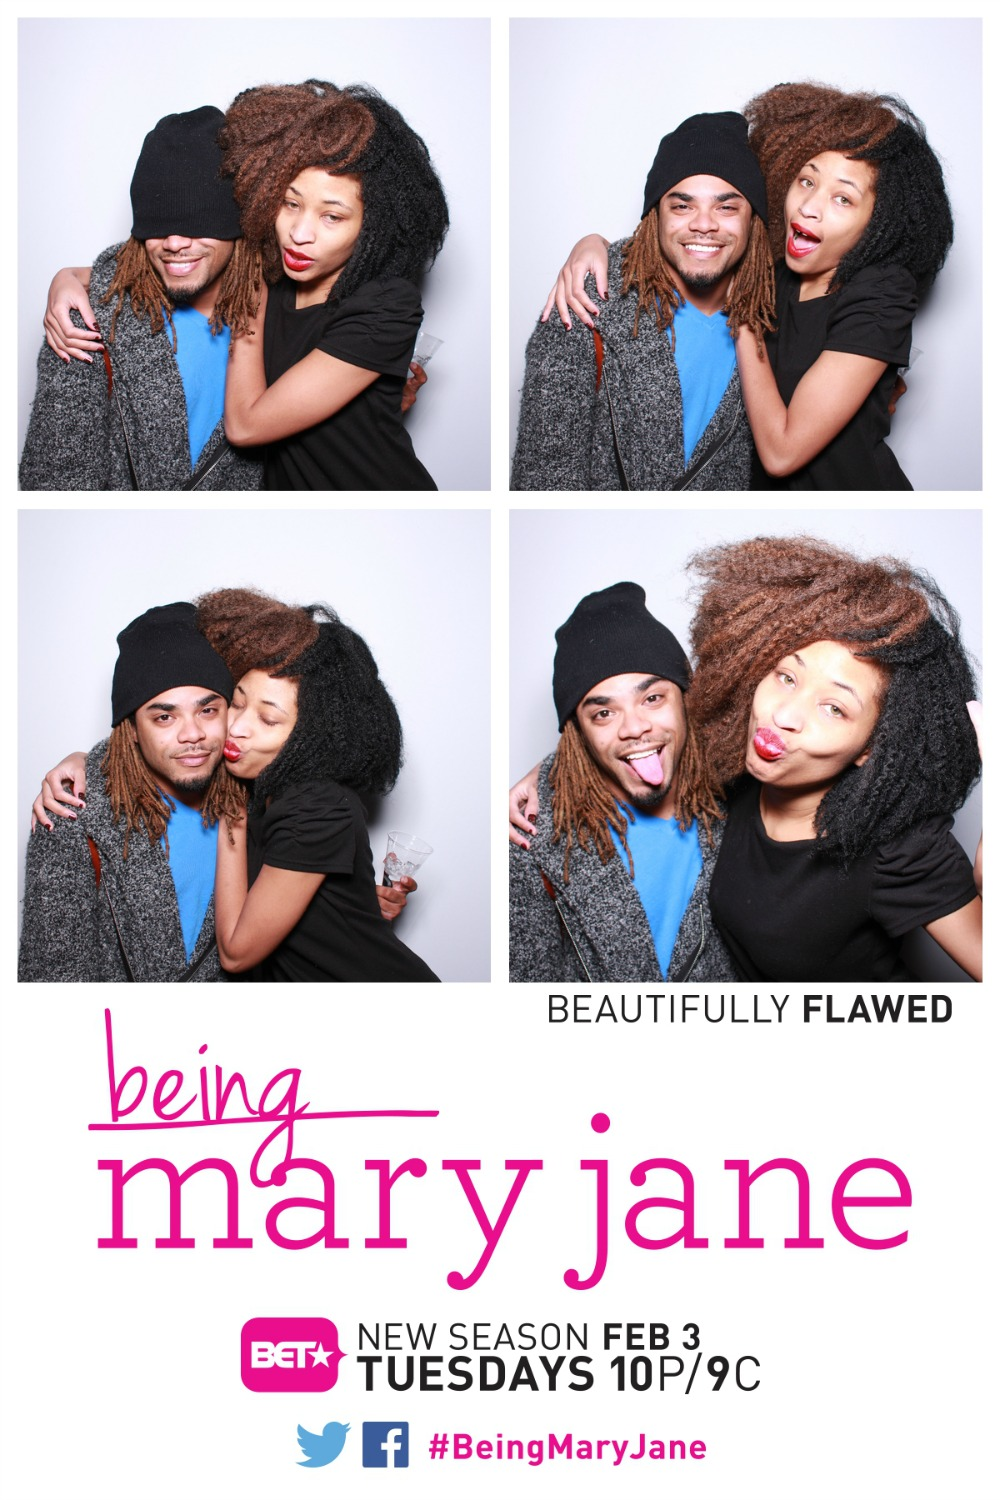 BEING-MARY-JANE-BET-SEASON-2-KIWI-THE-BEAUTY-BOOTH2